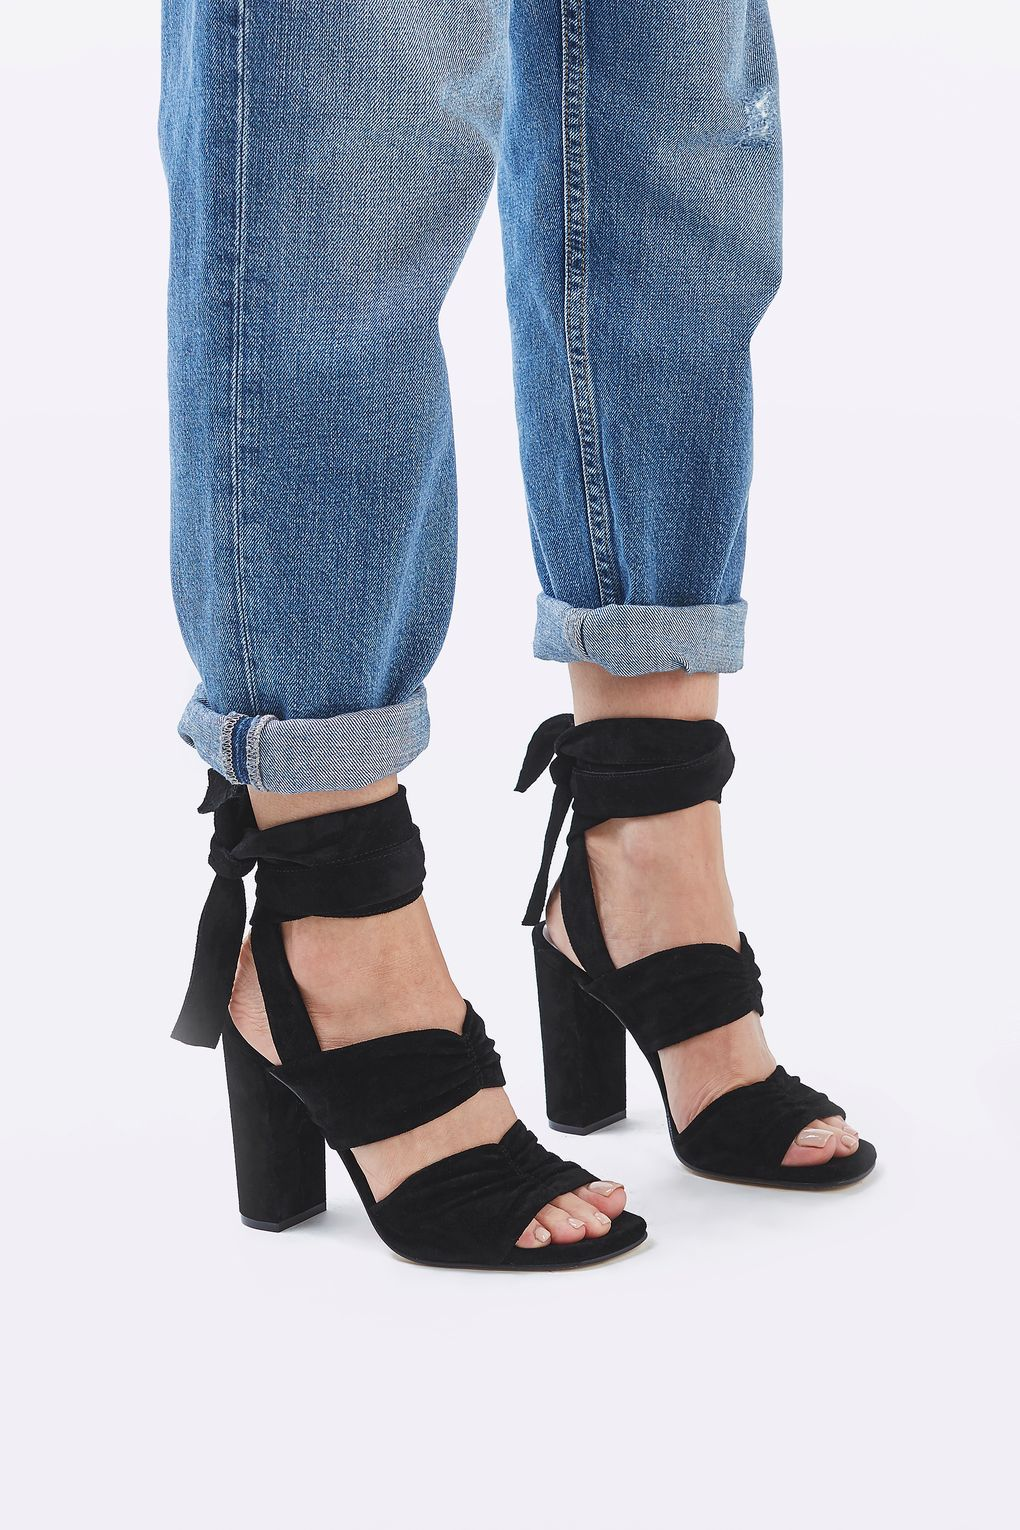 High Sandals by Molly Goddard x Topshop £125.00 Click to visit Topshop